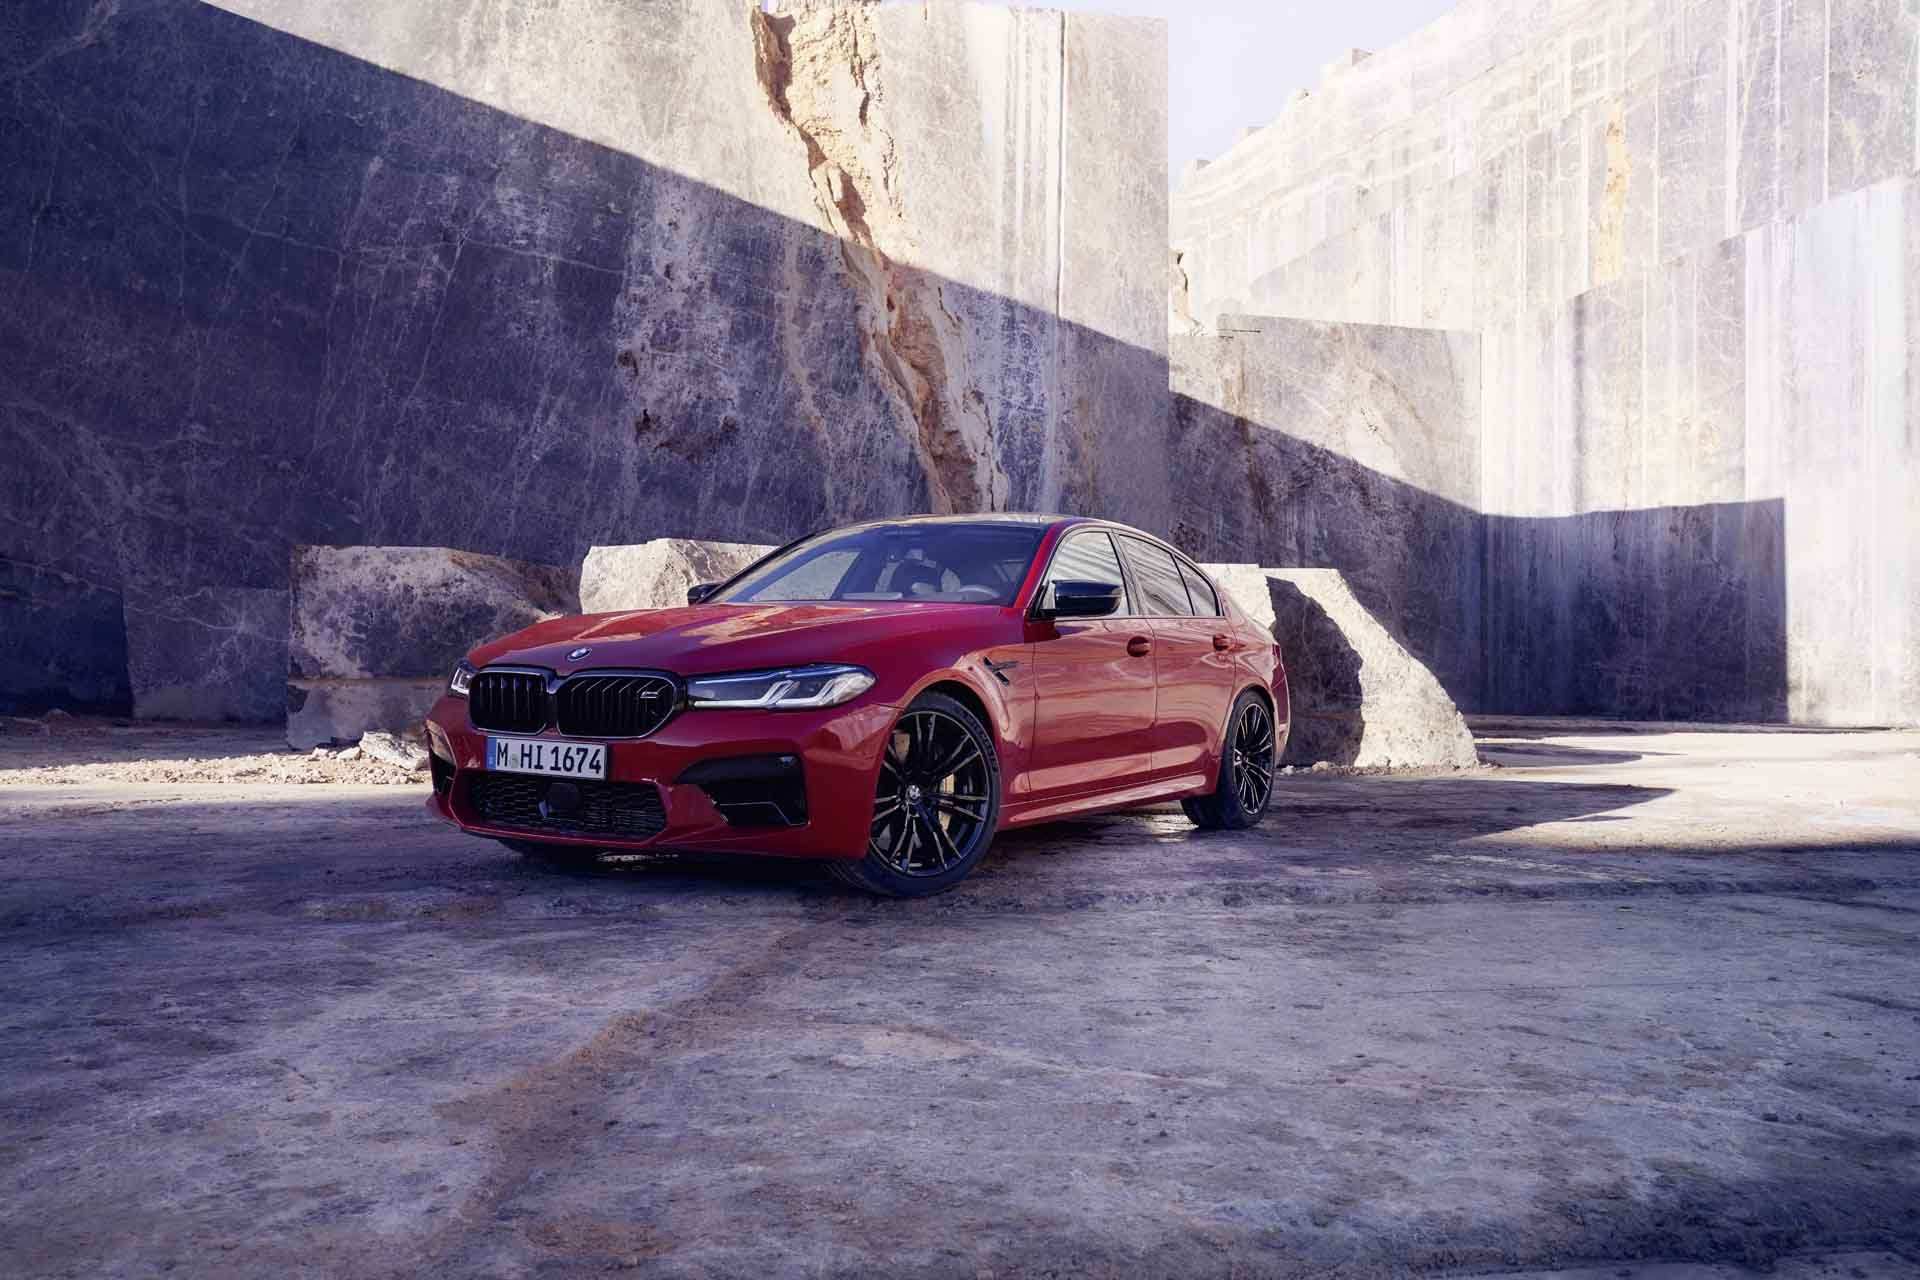 Bmw M5 And M5 Competition Get A Fresh Face For 2021